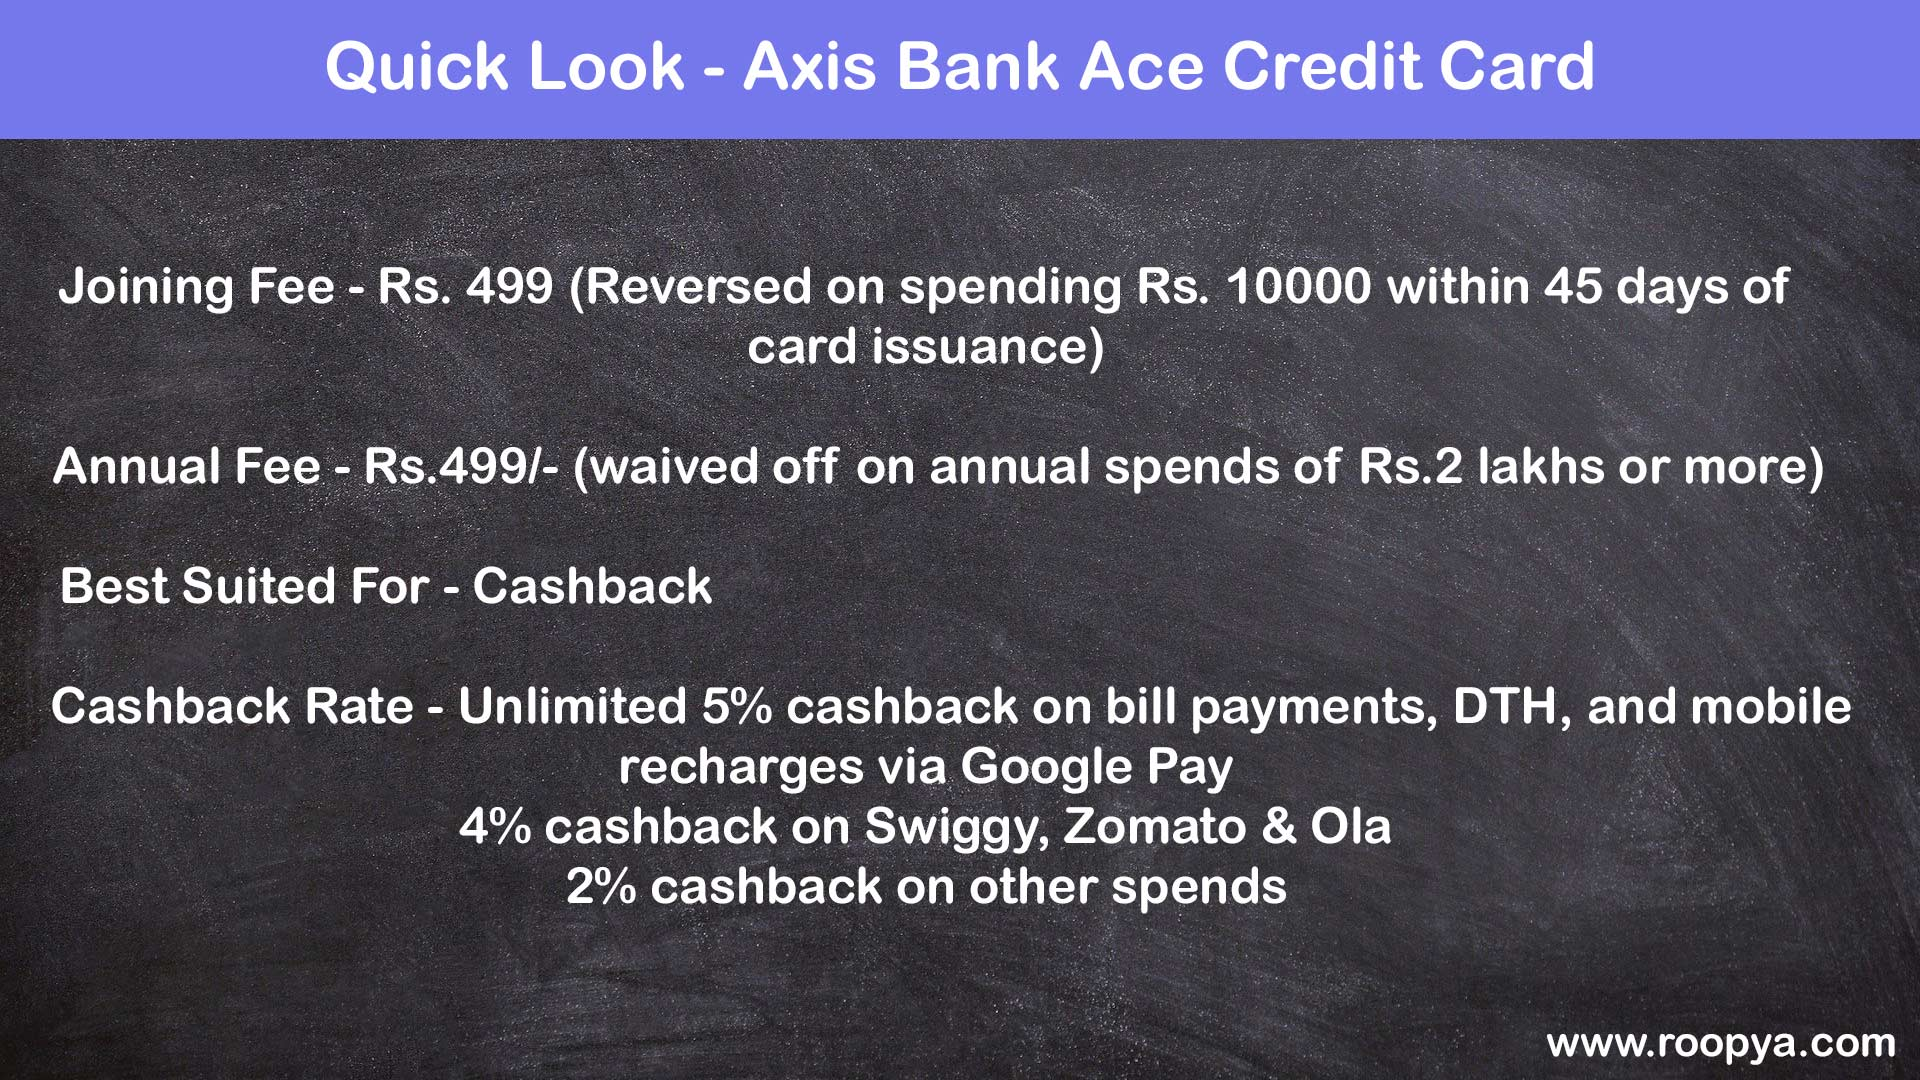 Axis Bank Ace Card Quick Look